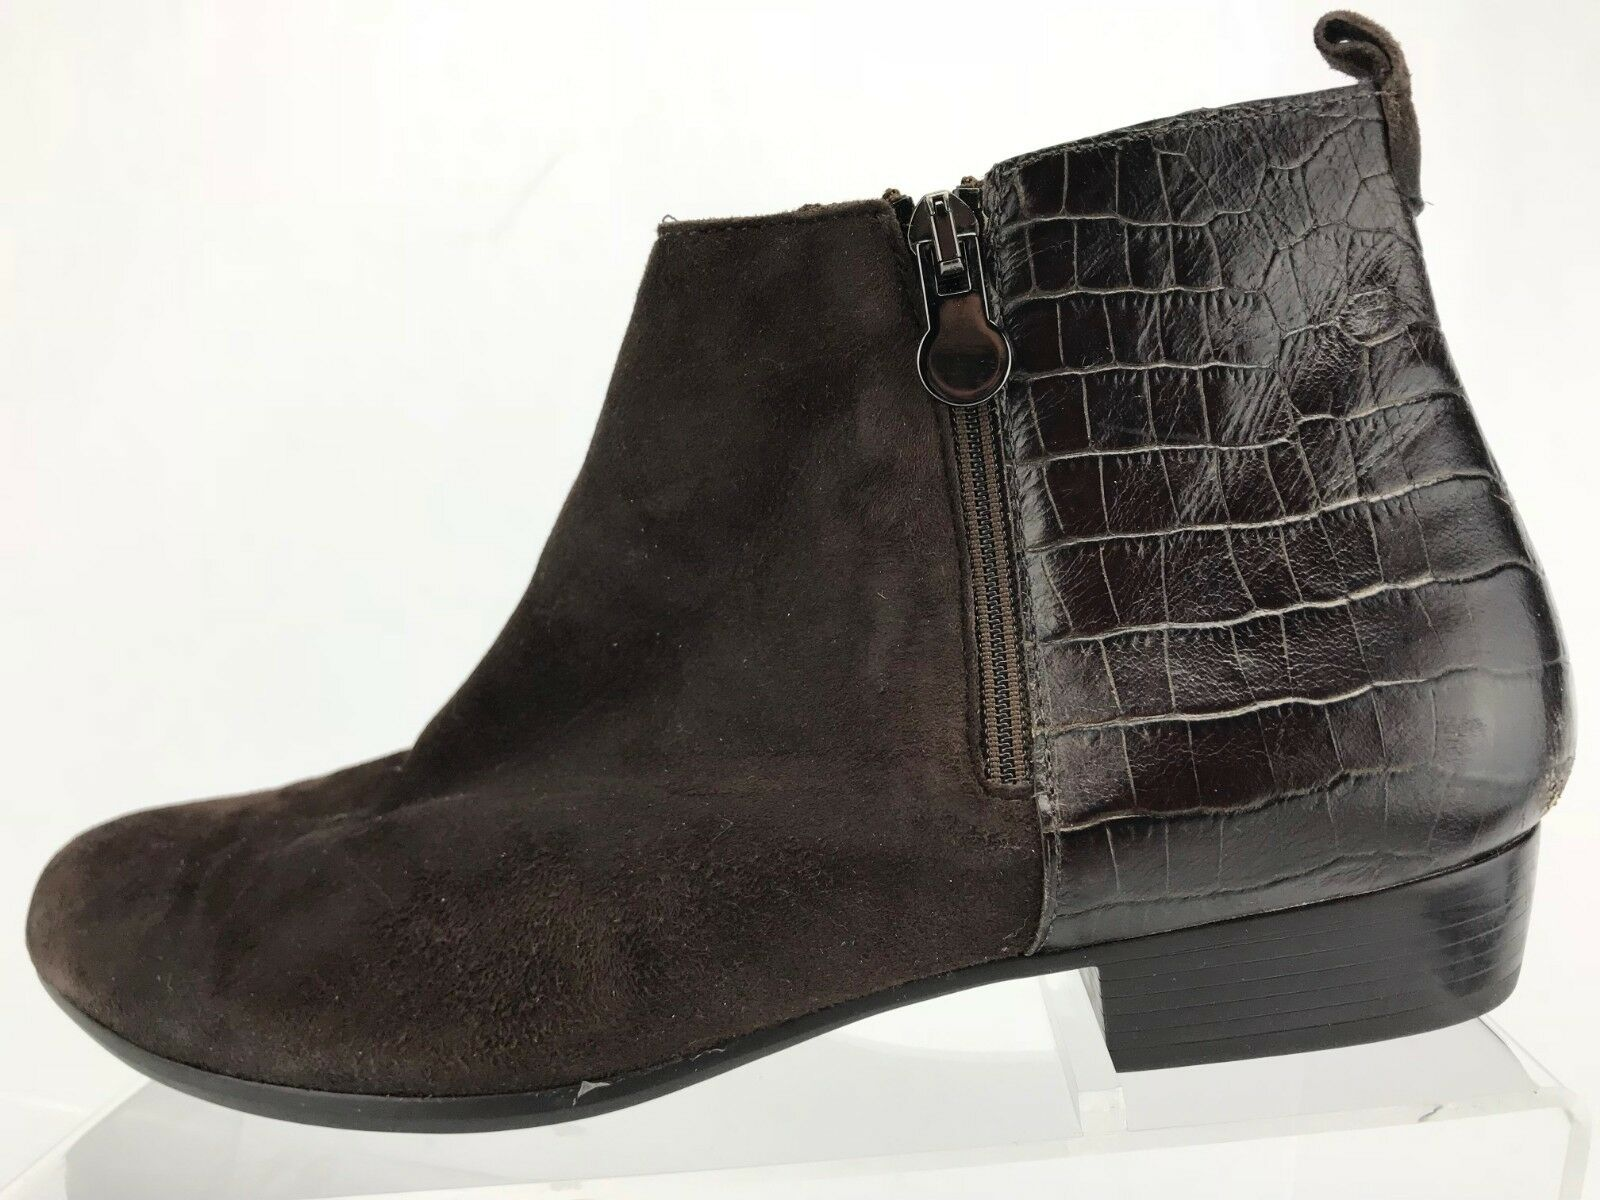 Munro Lexi Ankle Boots Brown Combo Suede Leather Booties Womens Size 9.5 W